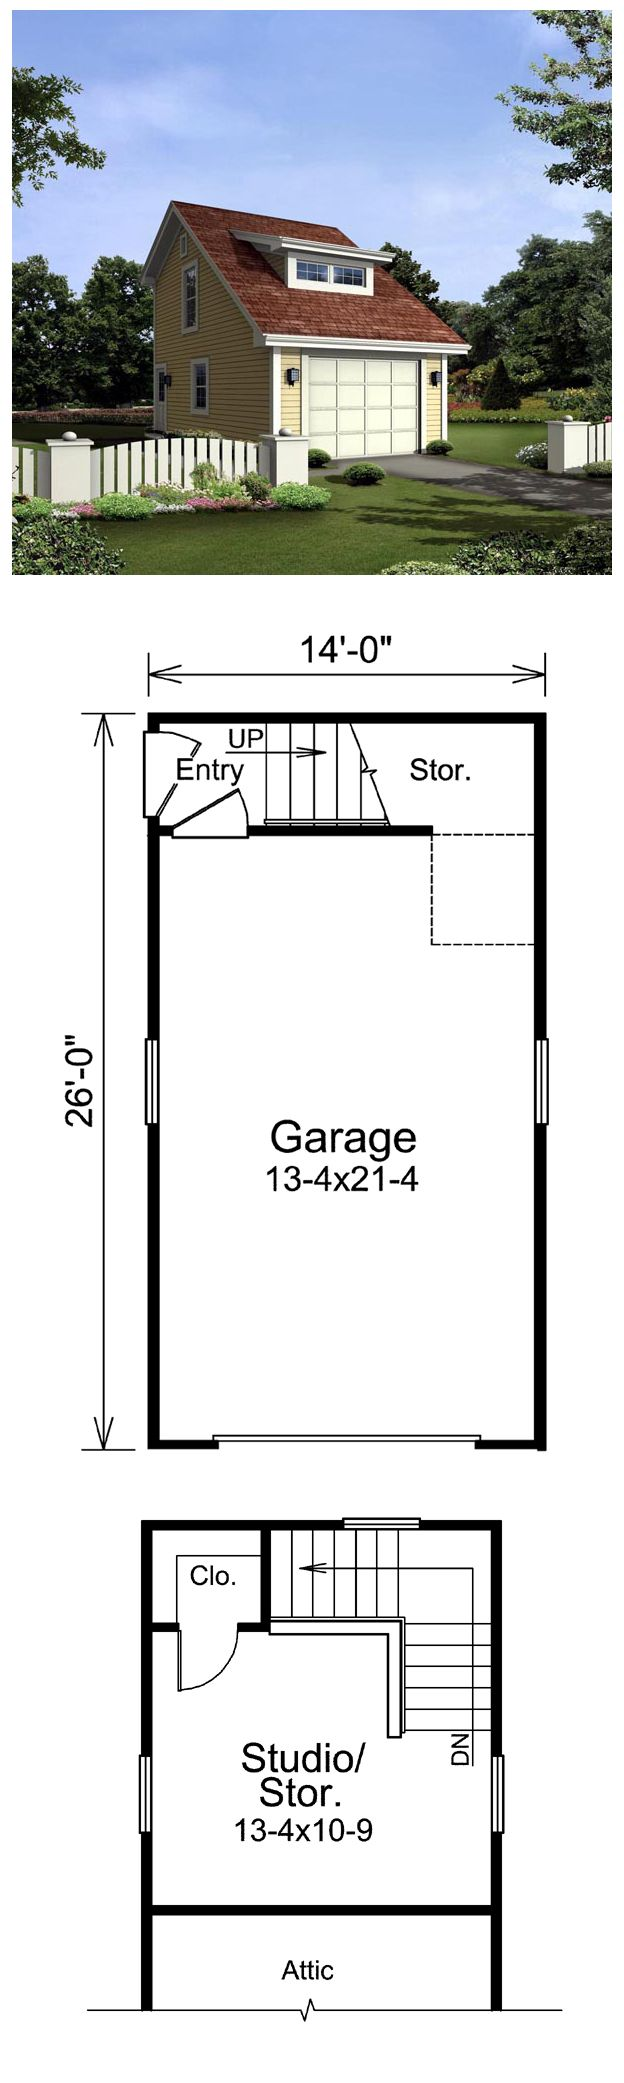 27 best images about one car garage plans on pinterest for Garage plans with storage